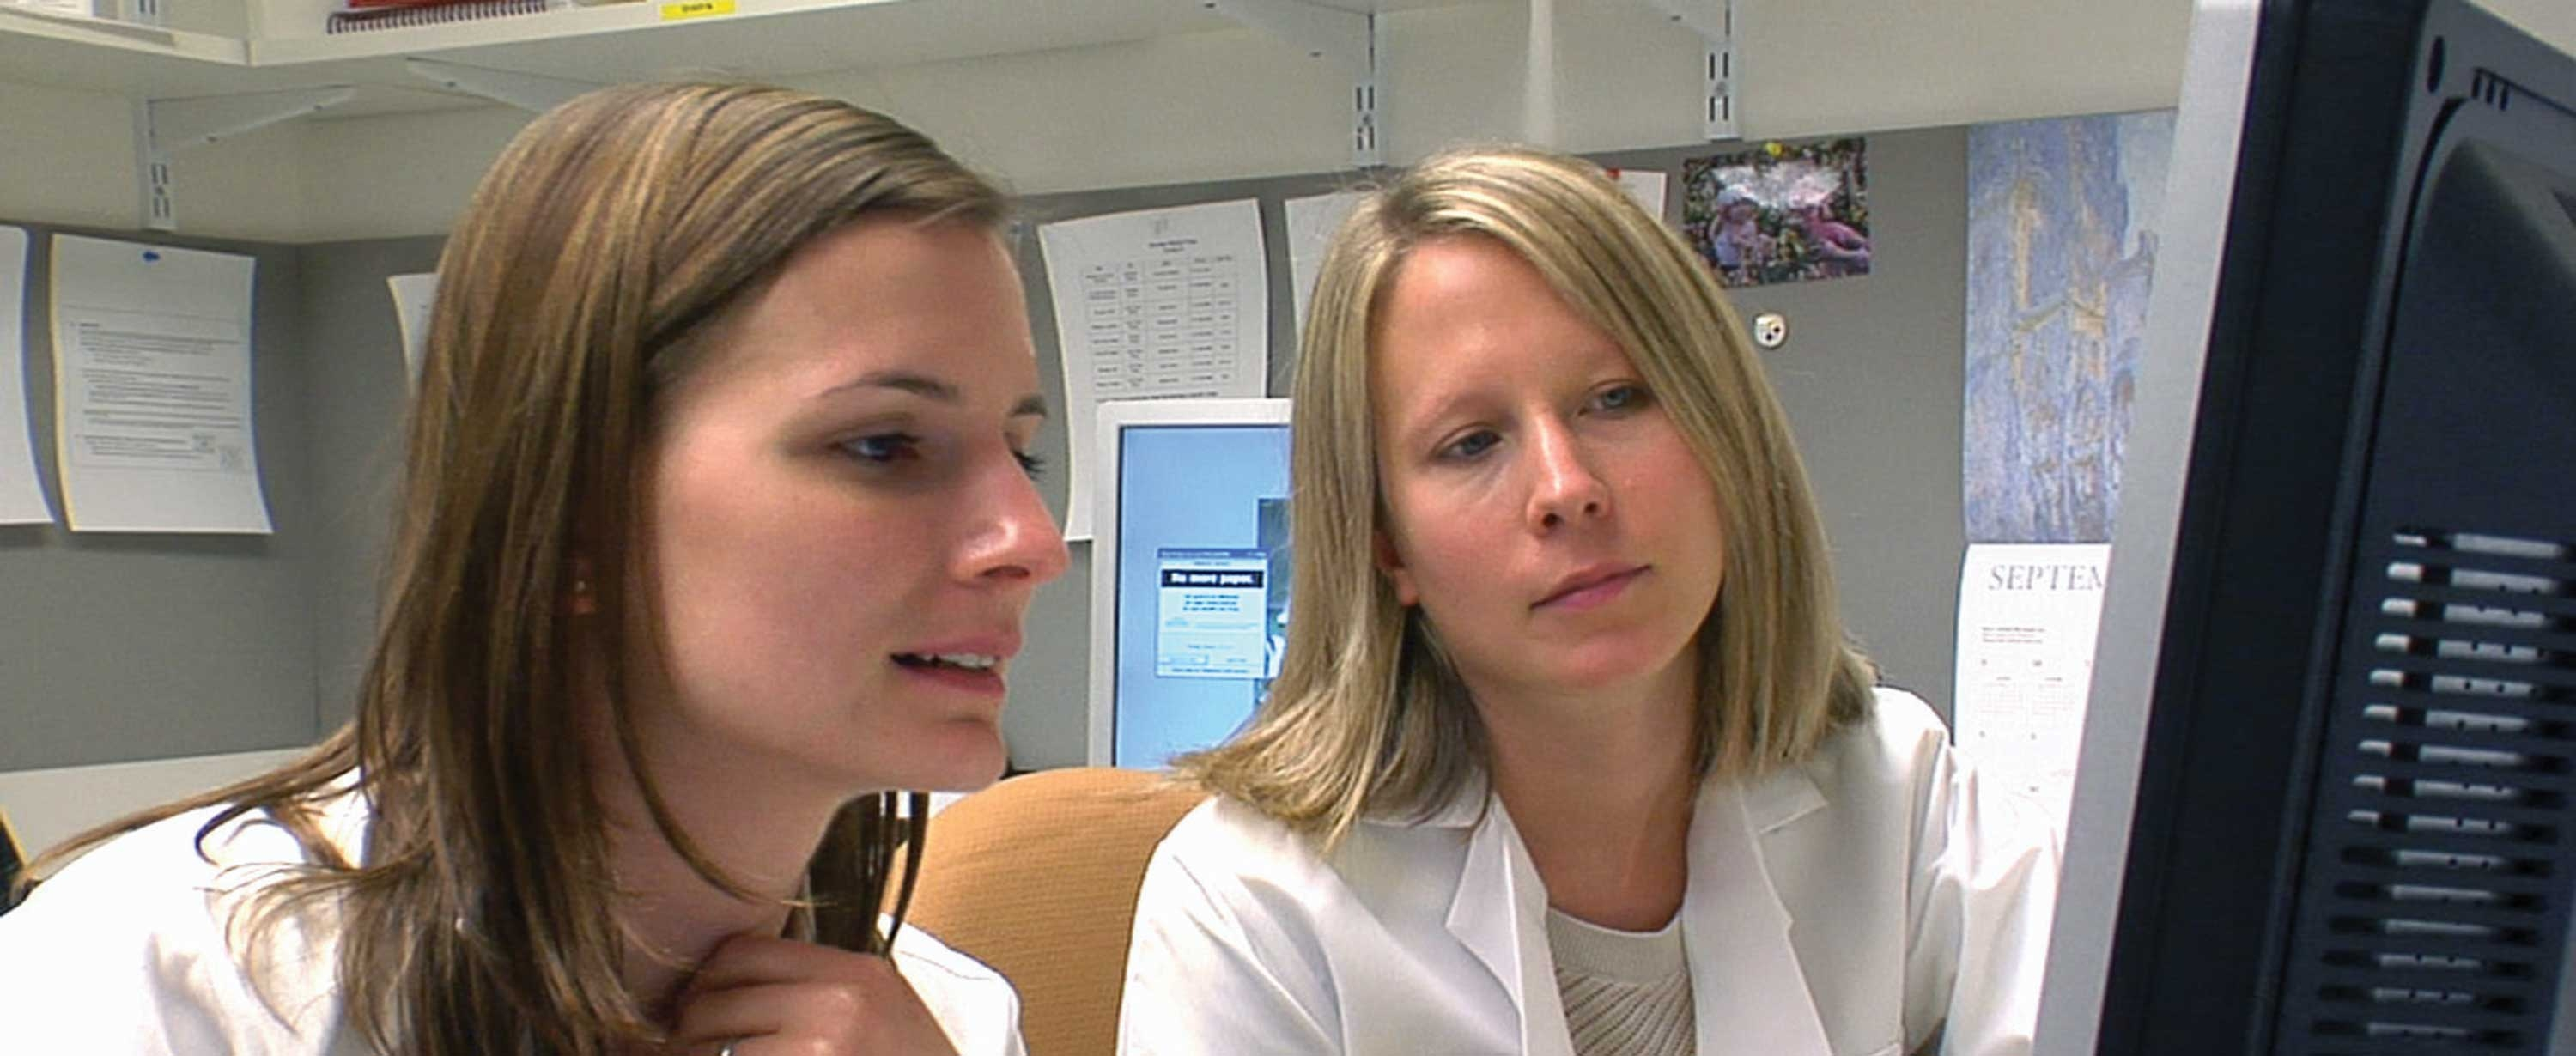 Two nurse practitioners conferring